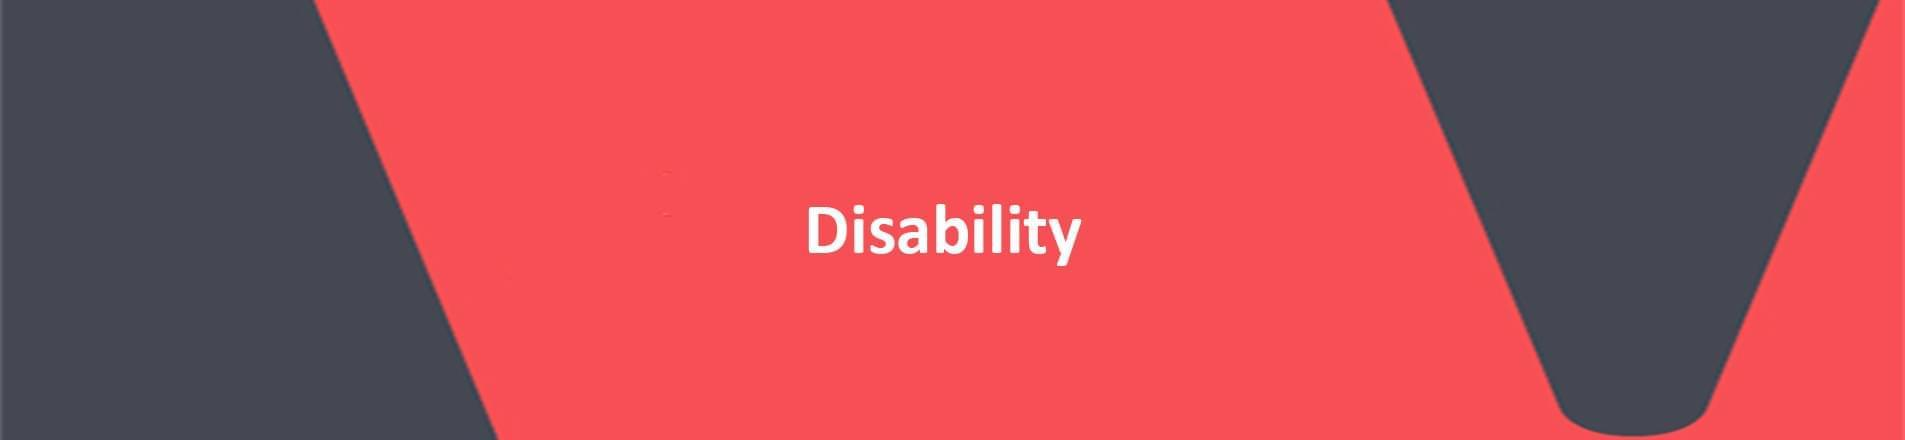 The word disability on a red VERCIDA branded background